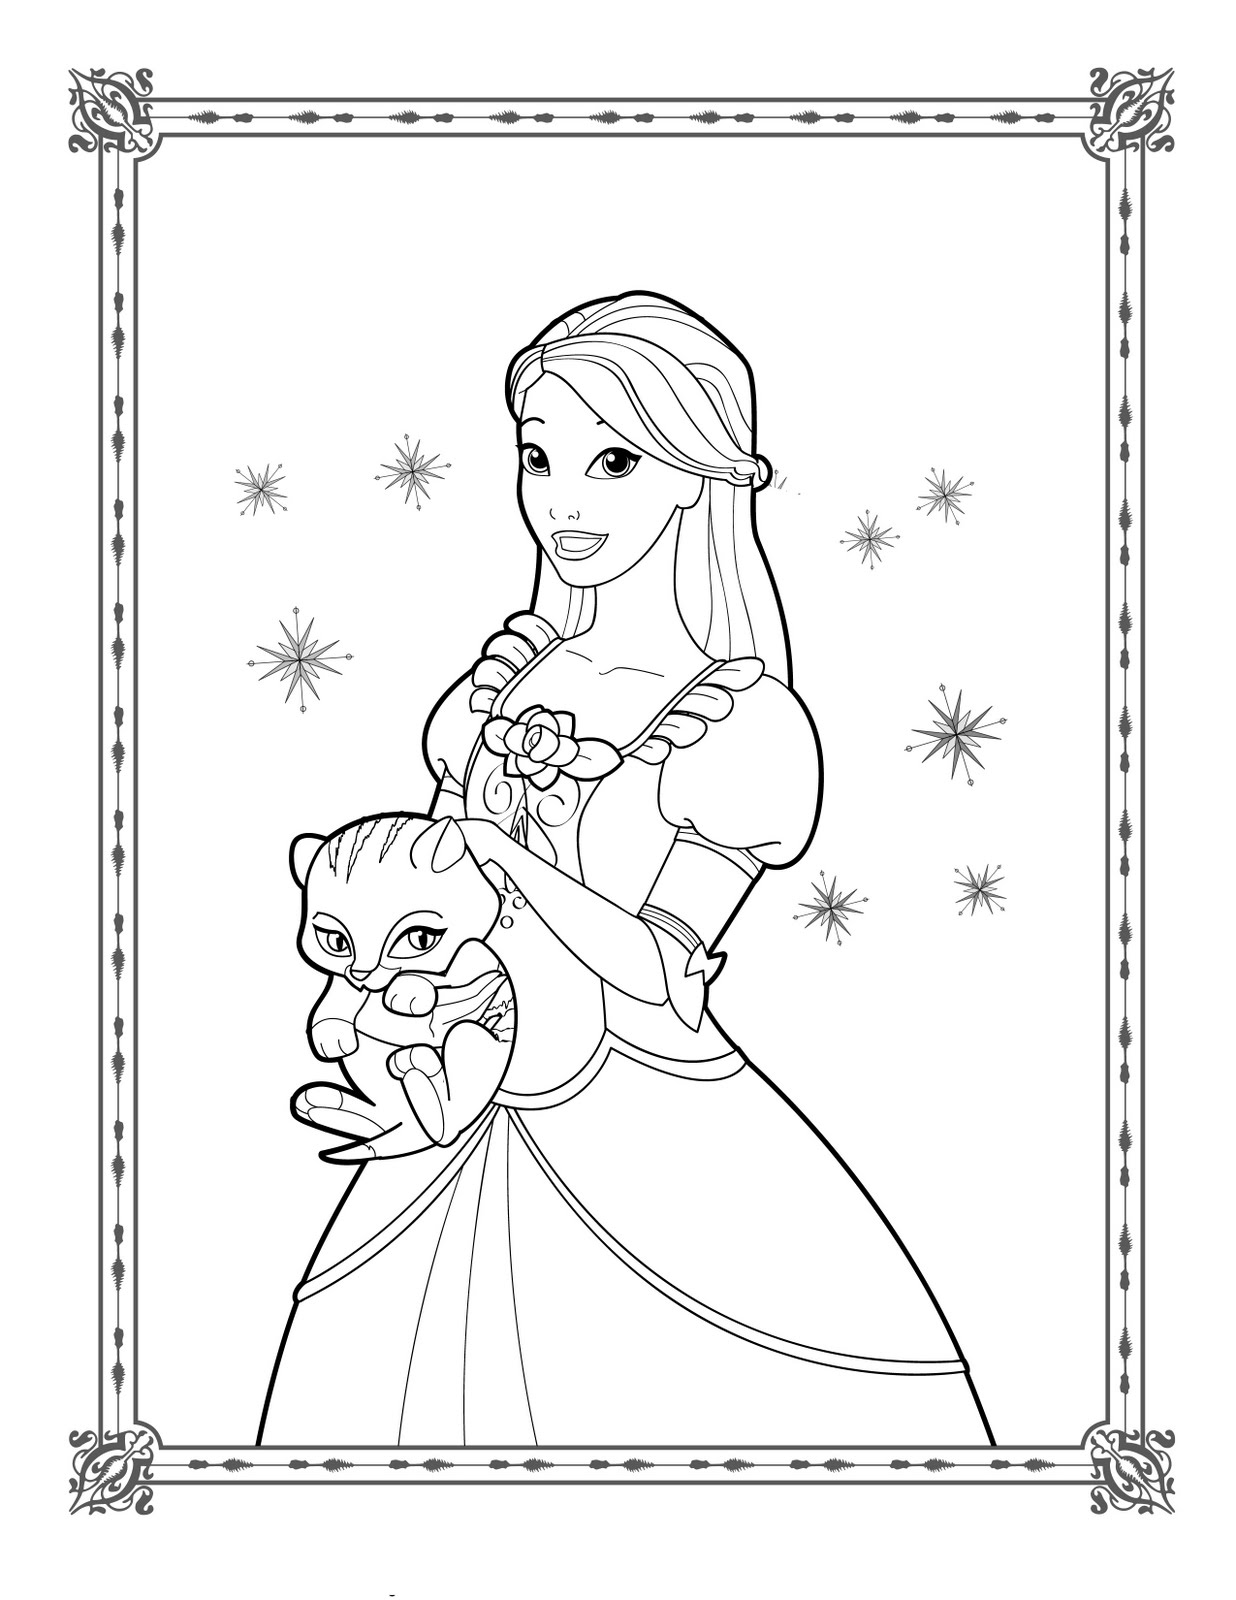 Barbie Dreamhouse Coloring Pages Coloring Coloring Pages